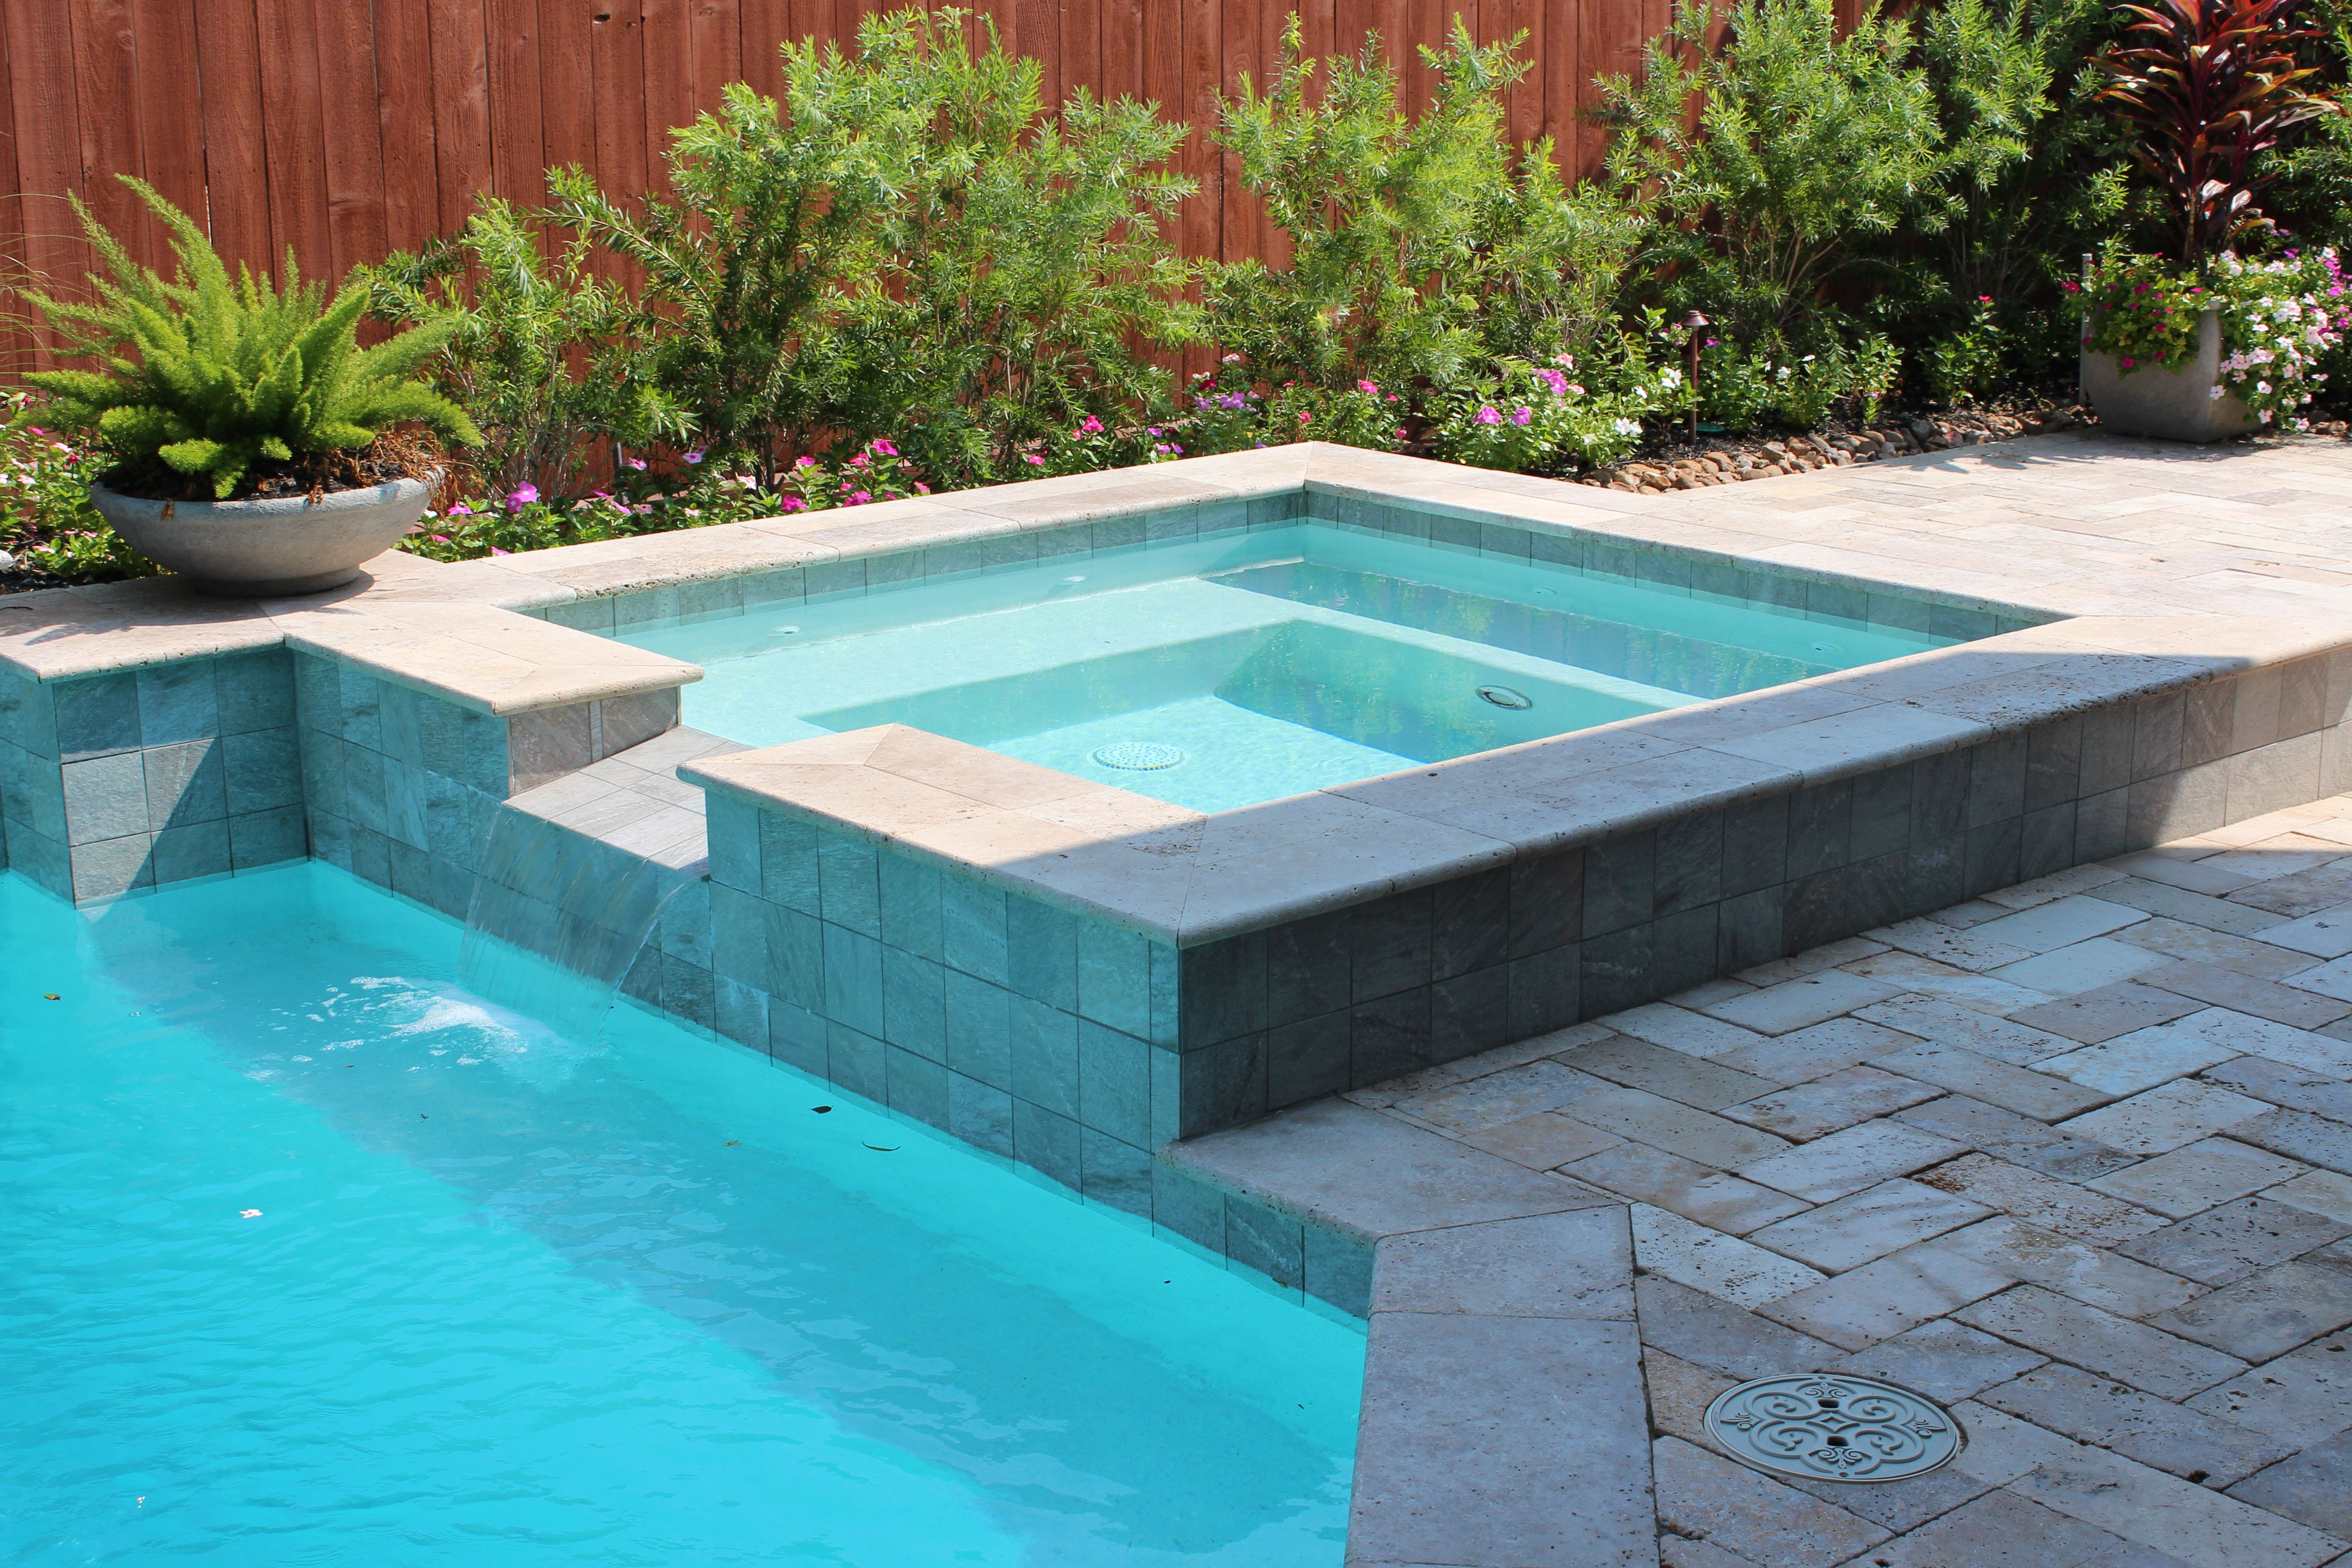 Swimming pool Square spa with tile spillover. Travertine